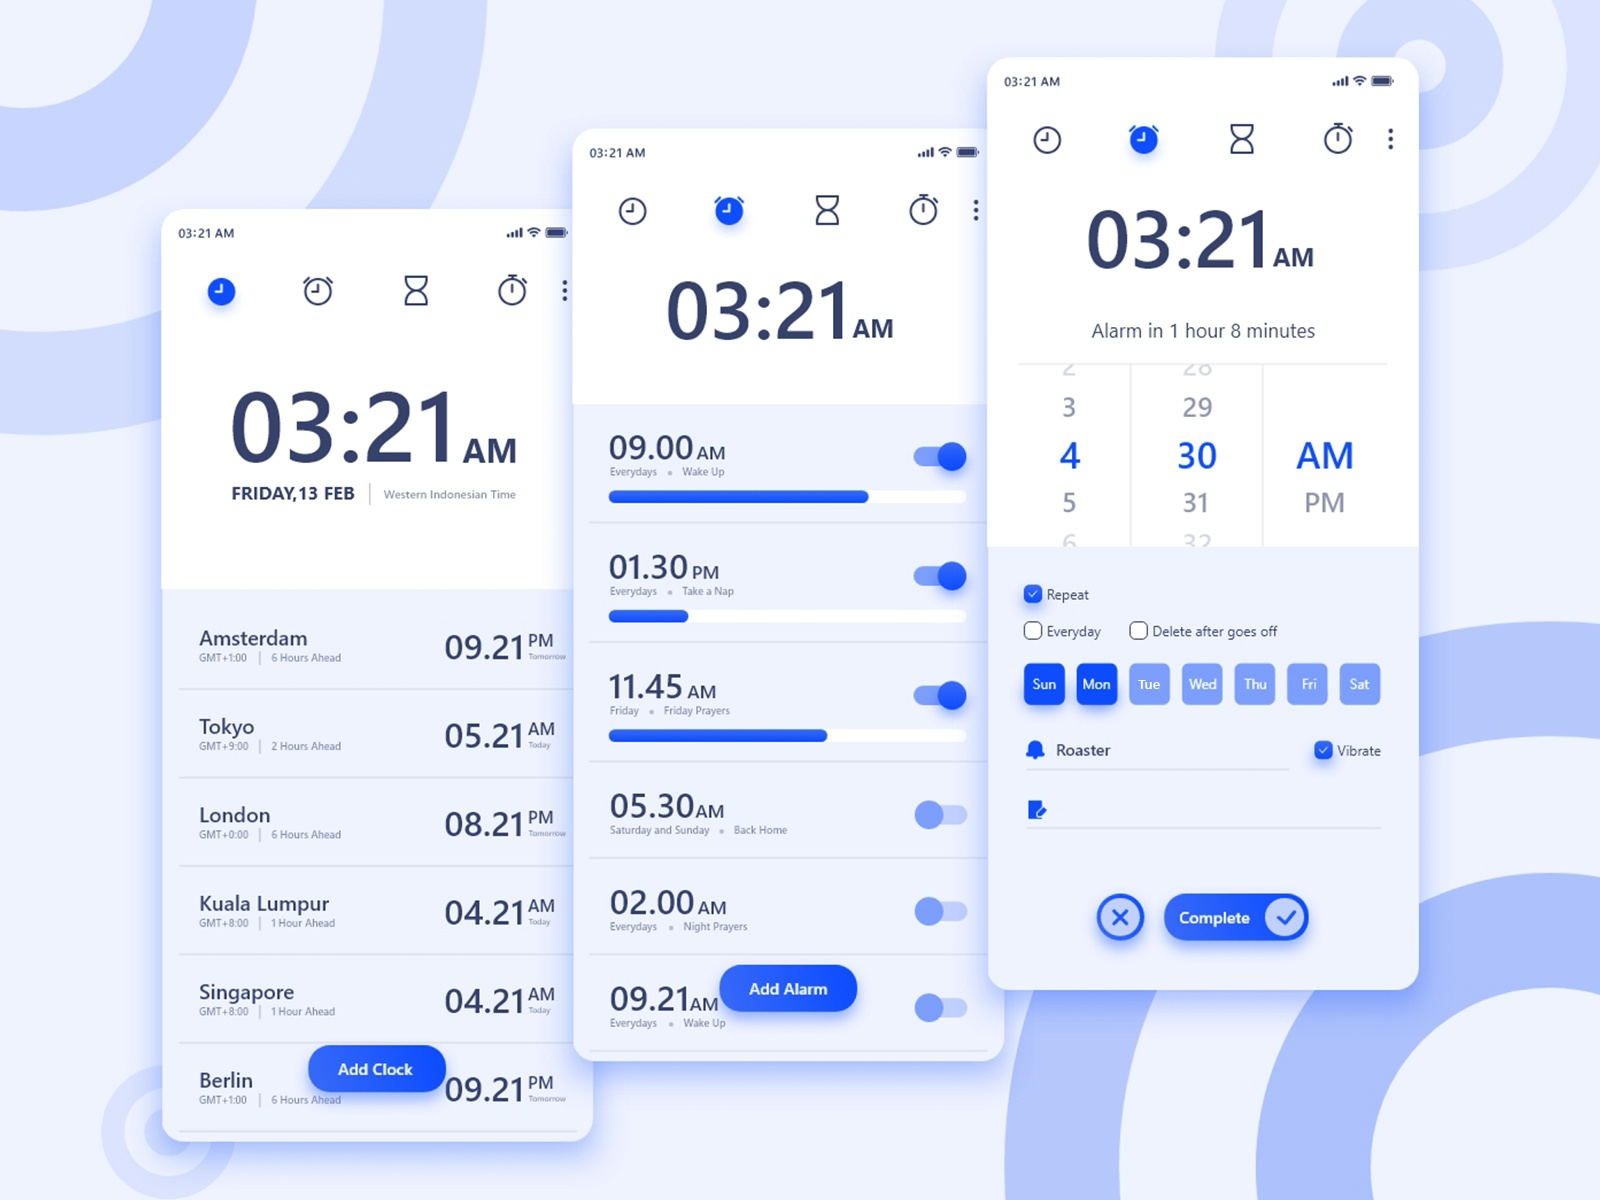 Clock App android app material design dayliui app concept interface gradient reminder schedule mobile icons ux ui alarm app alarm stopwatch timer clock ios android app